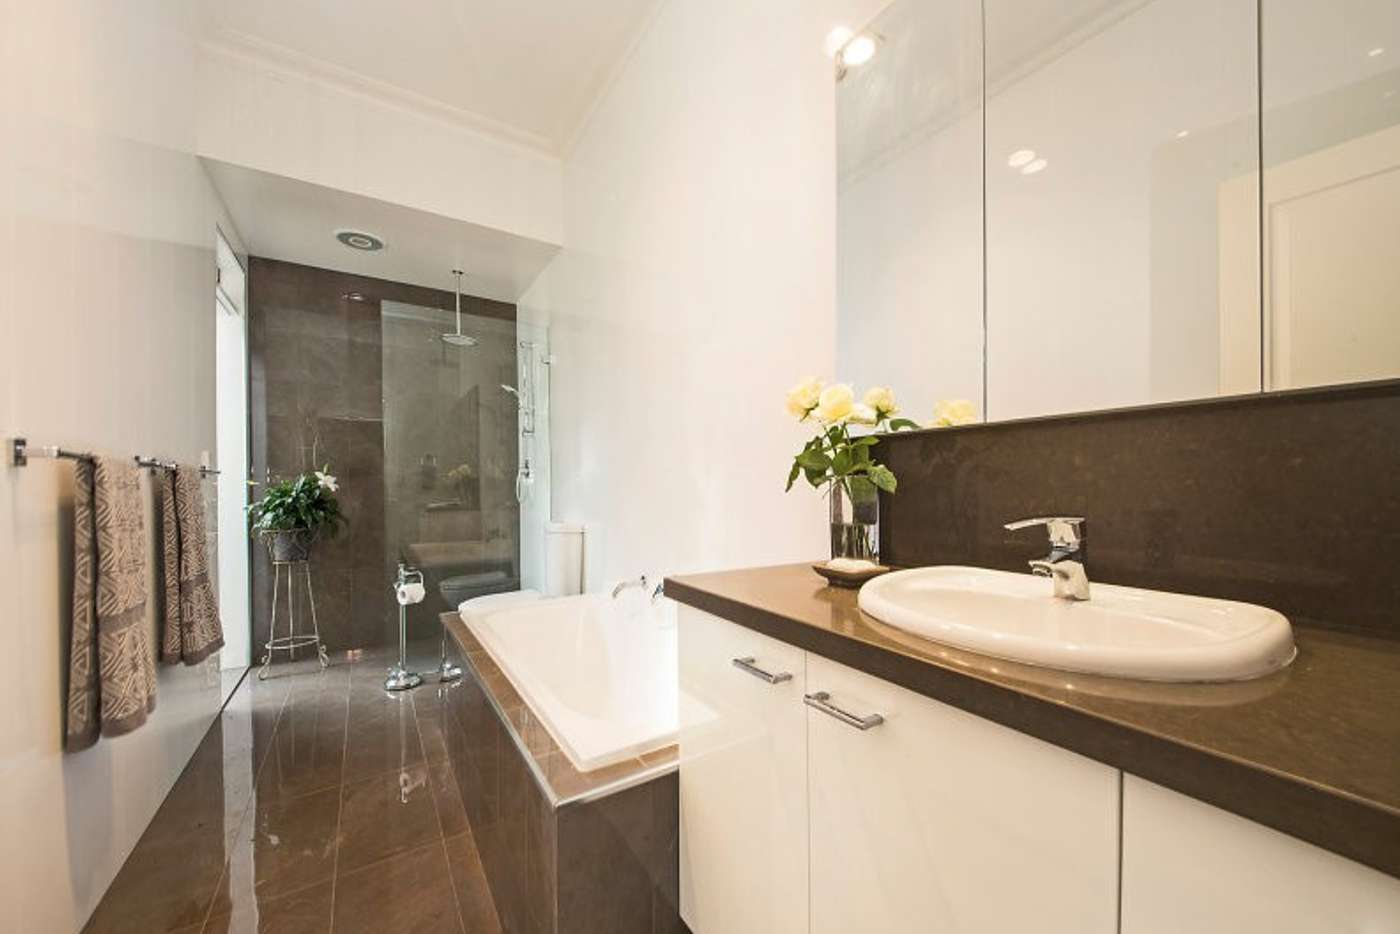 Seventh view of Homely house listing, 3 Warland Road, Hampton East VIC 3188